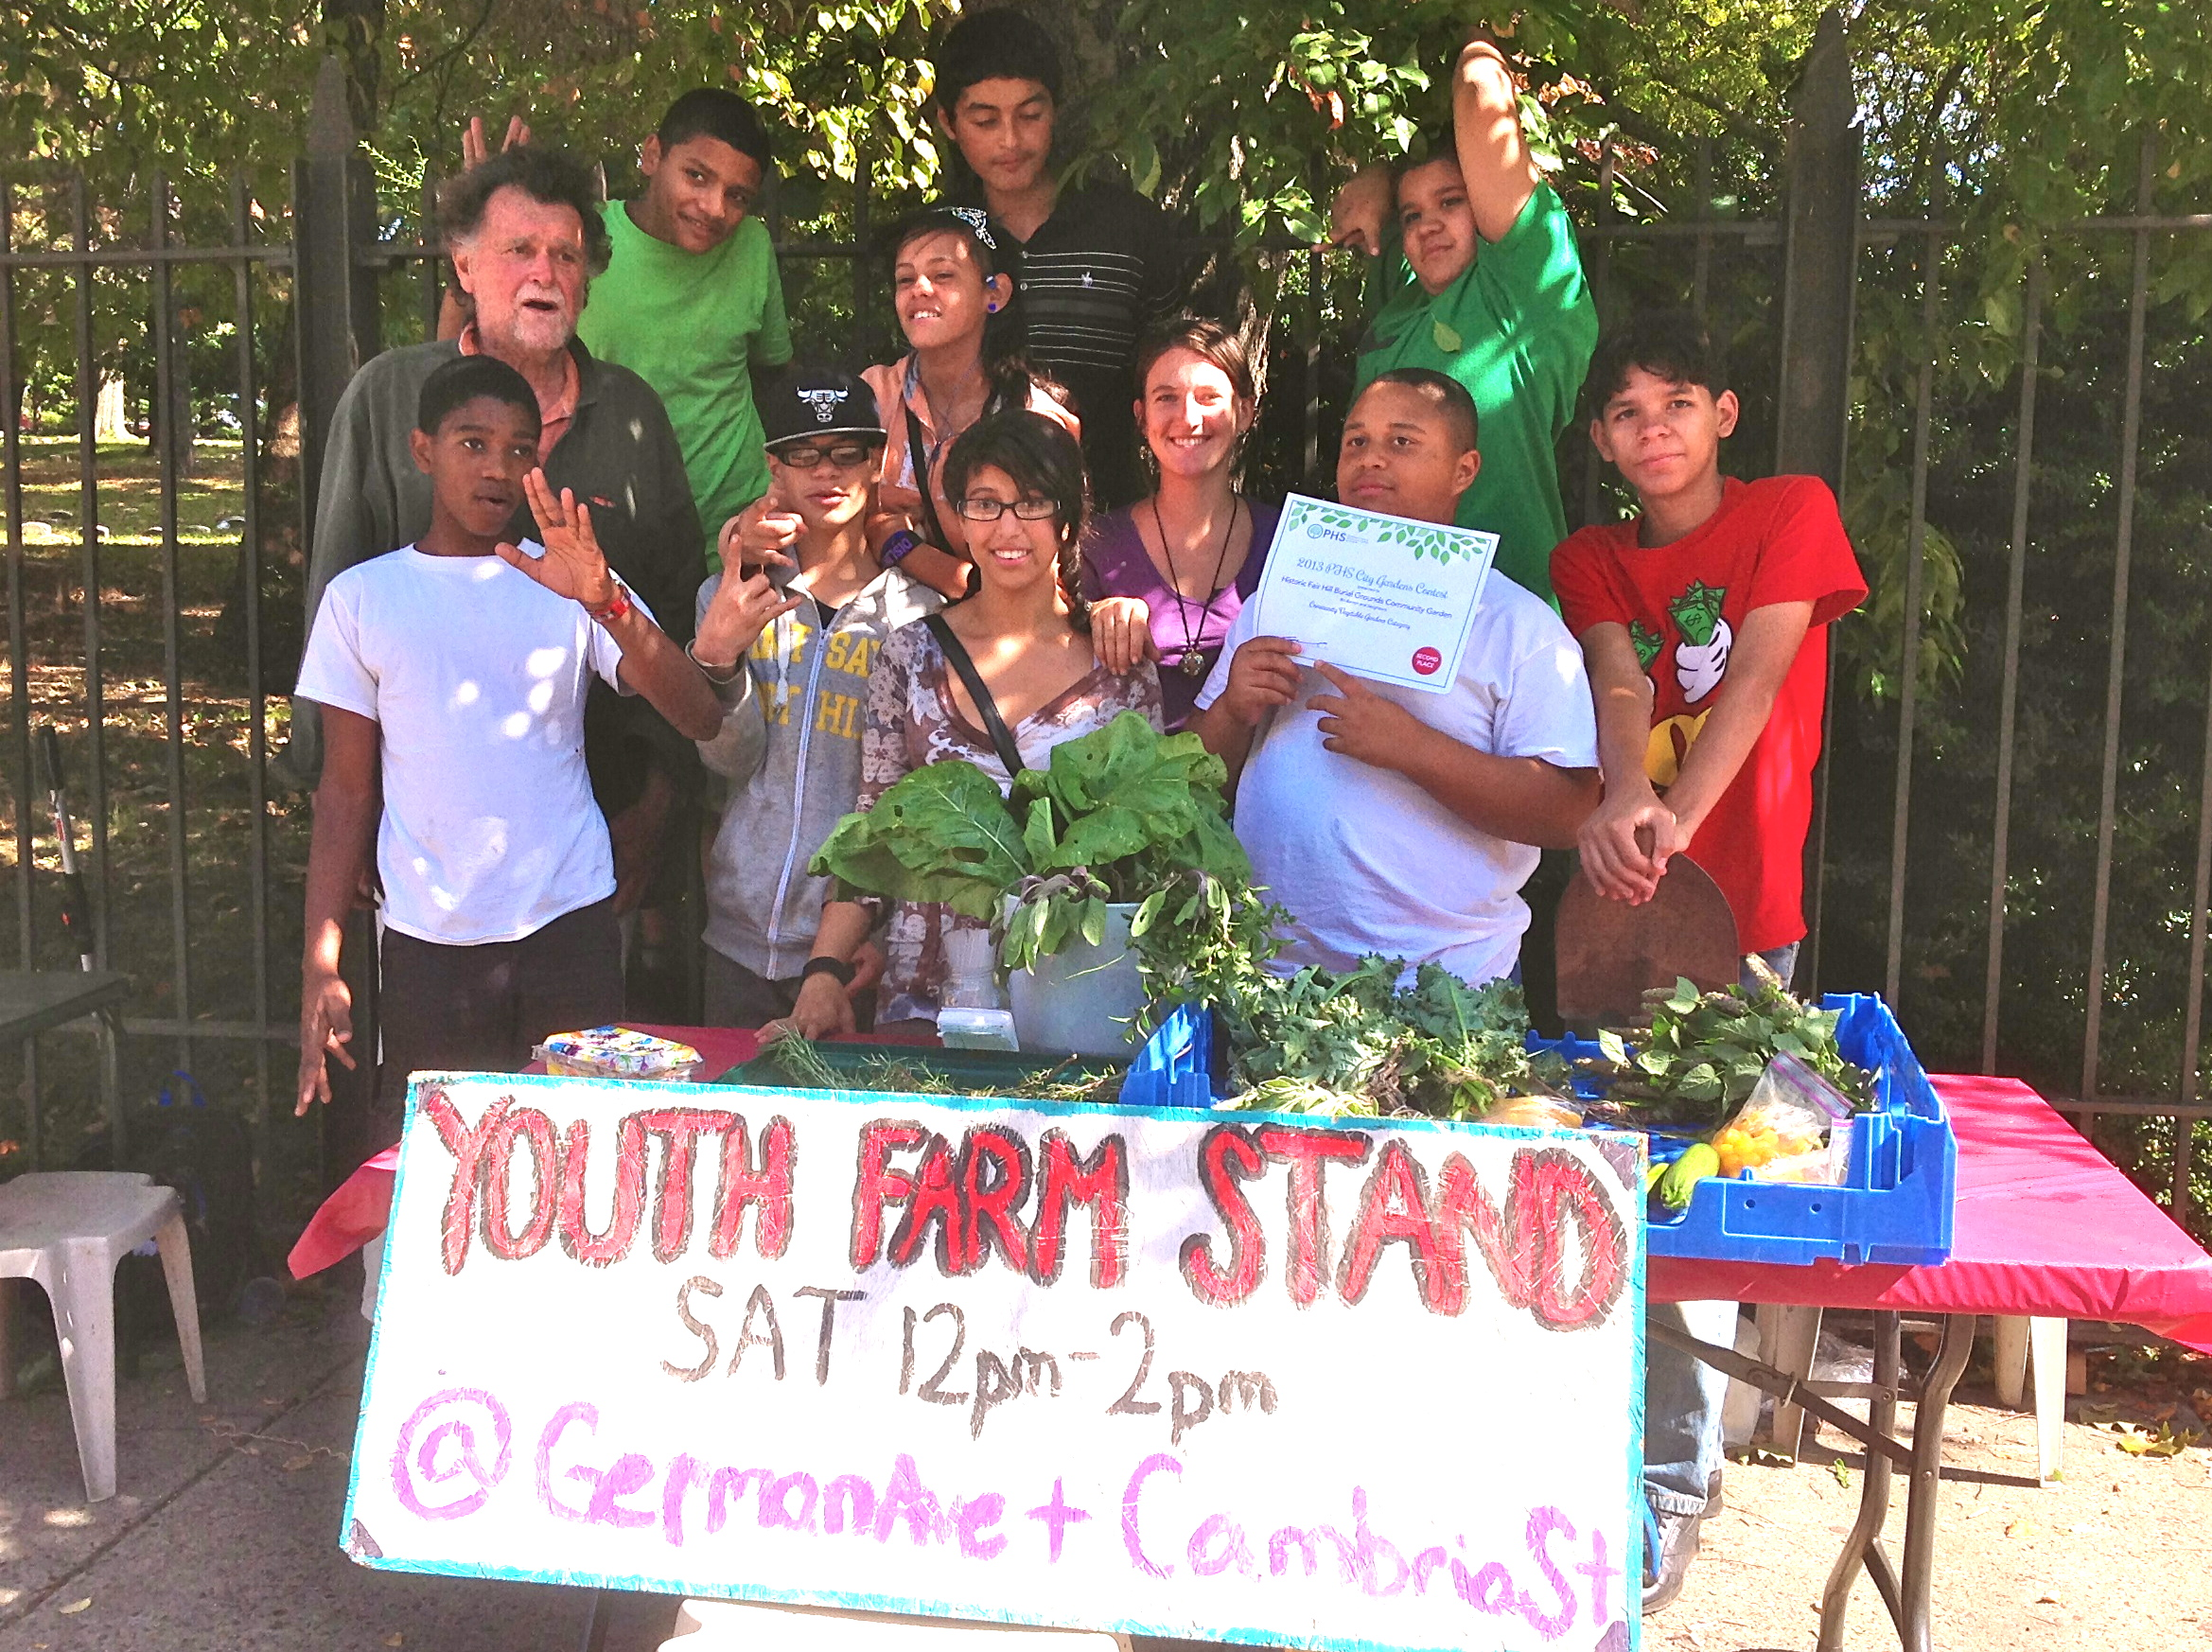 Youth Farmstand